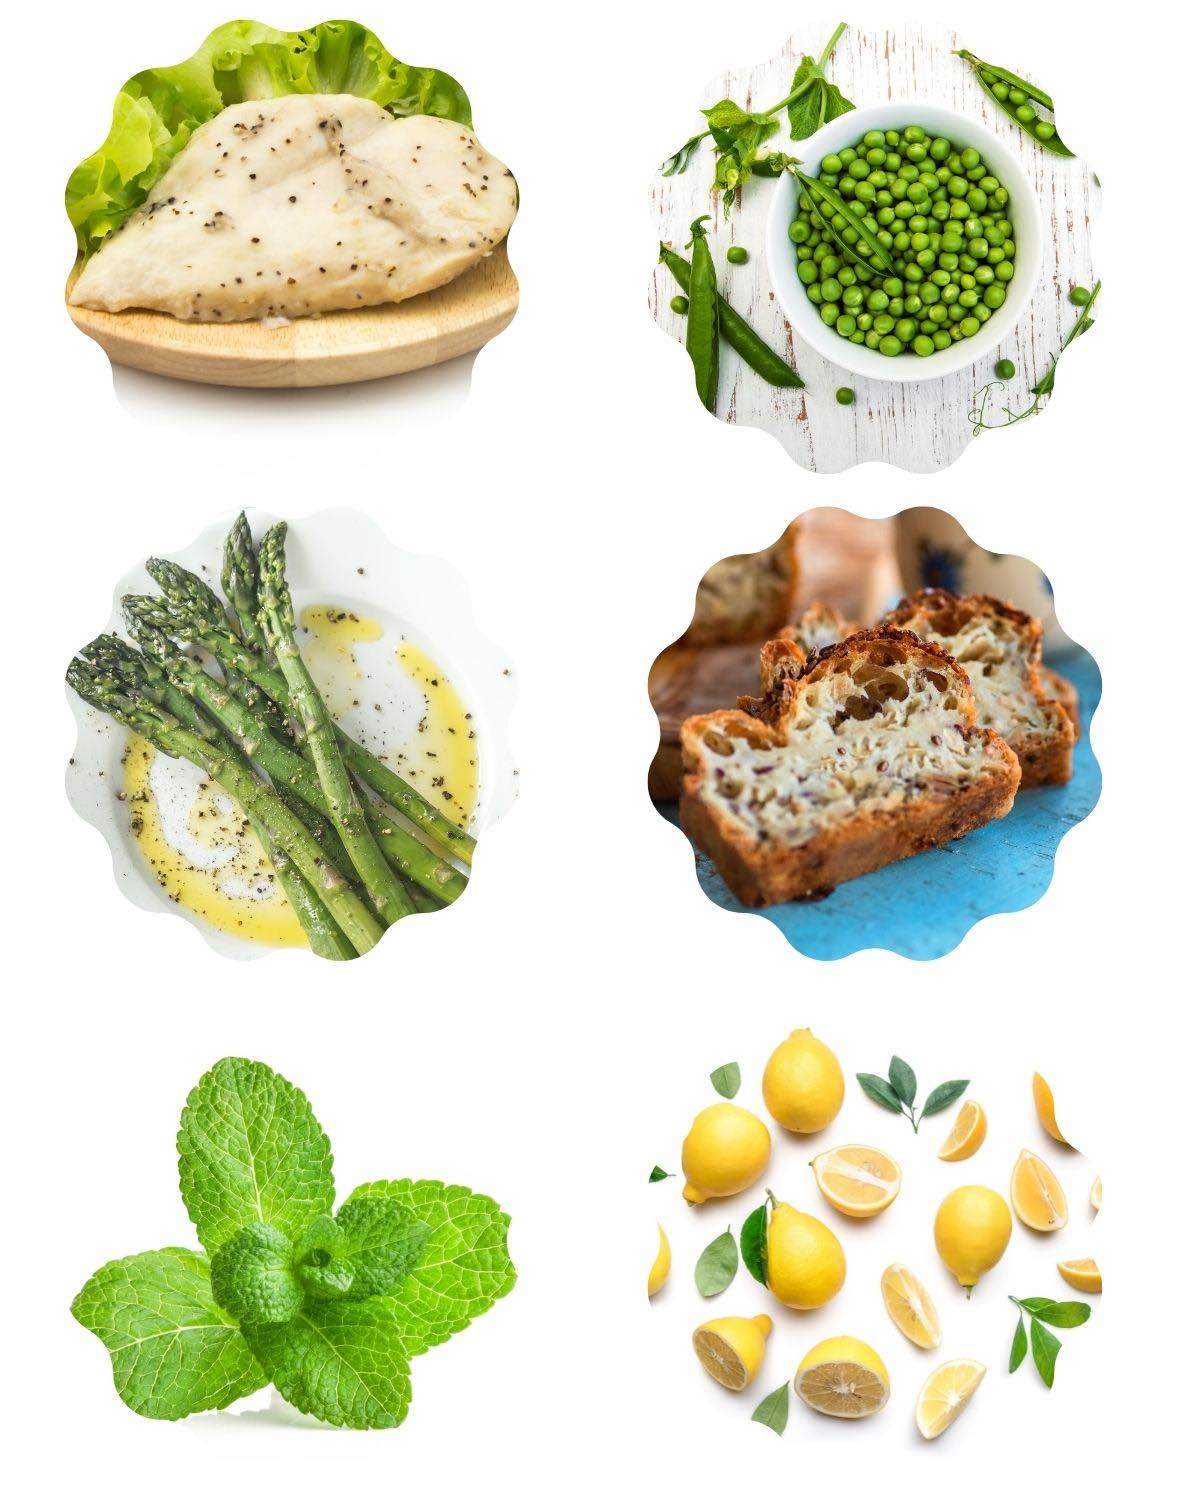 Graphic with 6 photos of ingredients to make chicken and peas: chicken, peas, asparagus, gluten free bread, lemon, and mint.